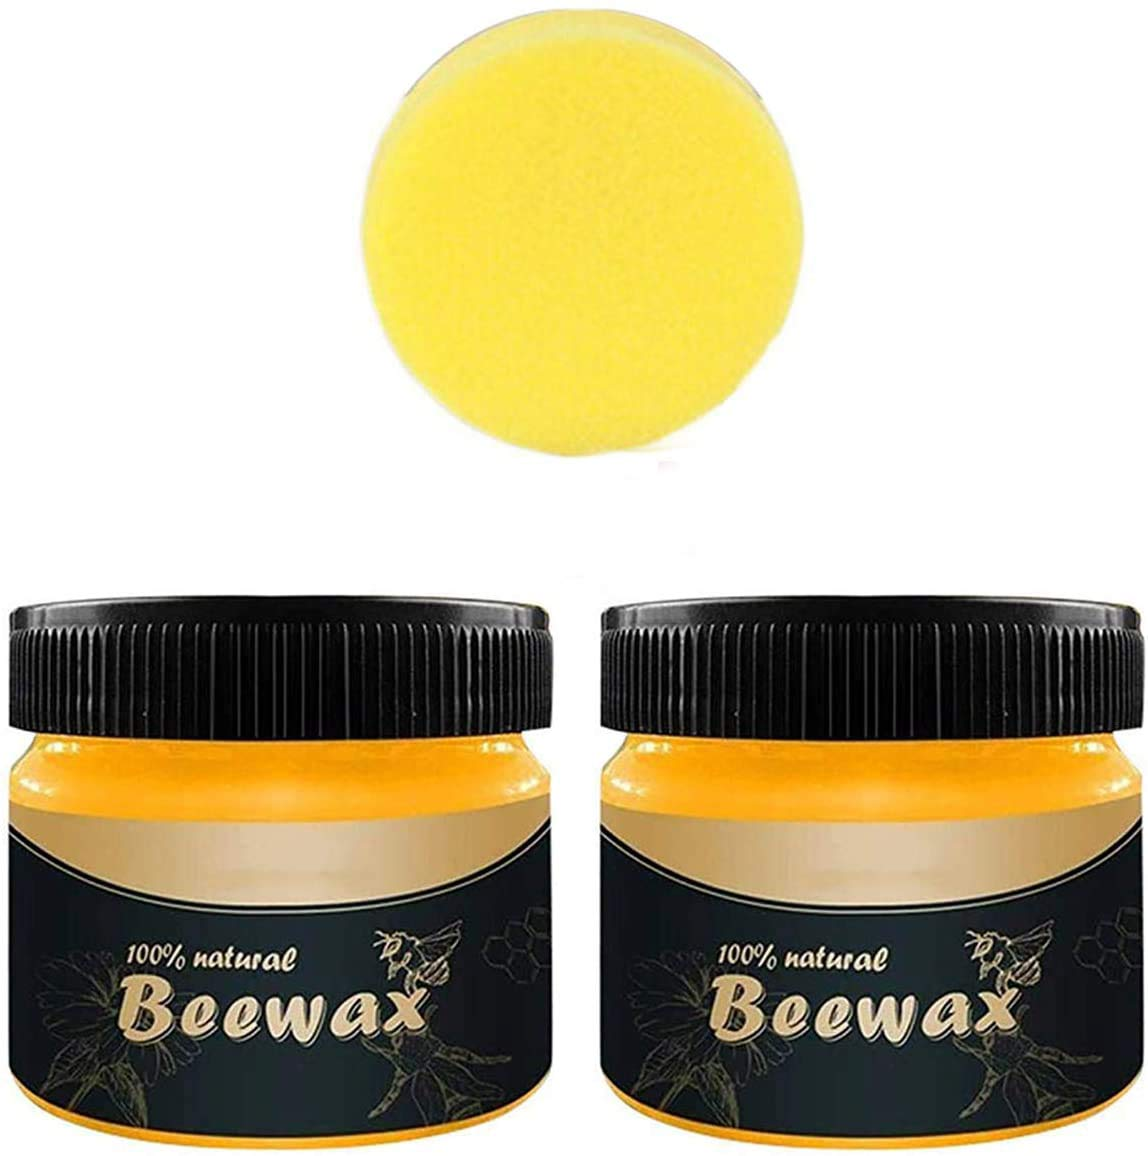 Wood Seasoning Beewax - Traditional Beeswax Polish for Wood & Furniture, All-Purpose Beewax for Wood Cleaner and Polish Wipes - Non Toxic for Furniture to Beautify & Protect (2 pcs)